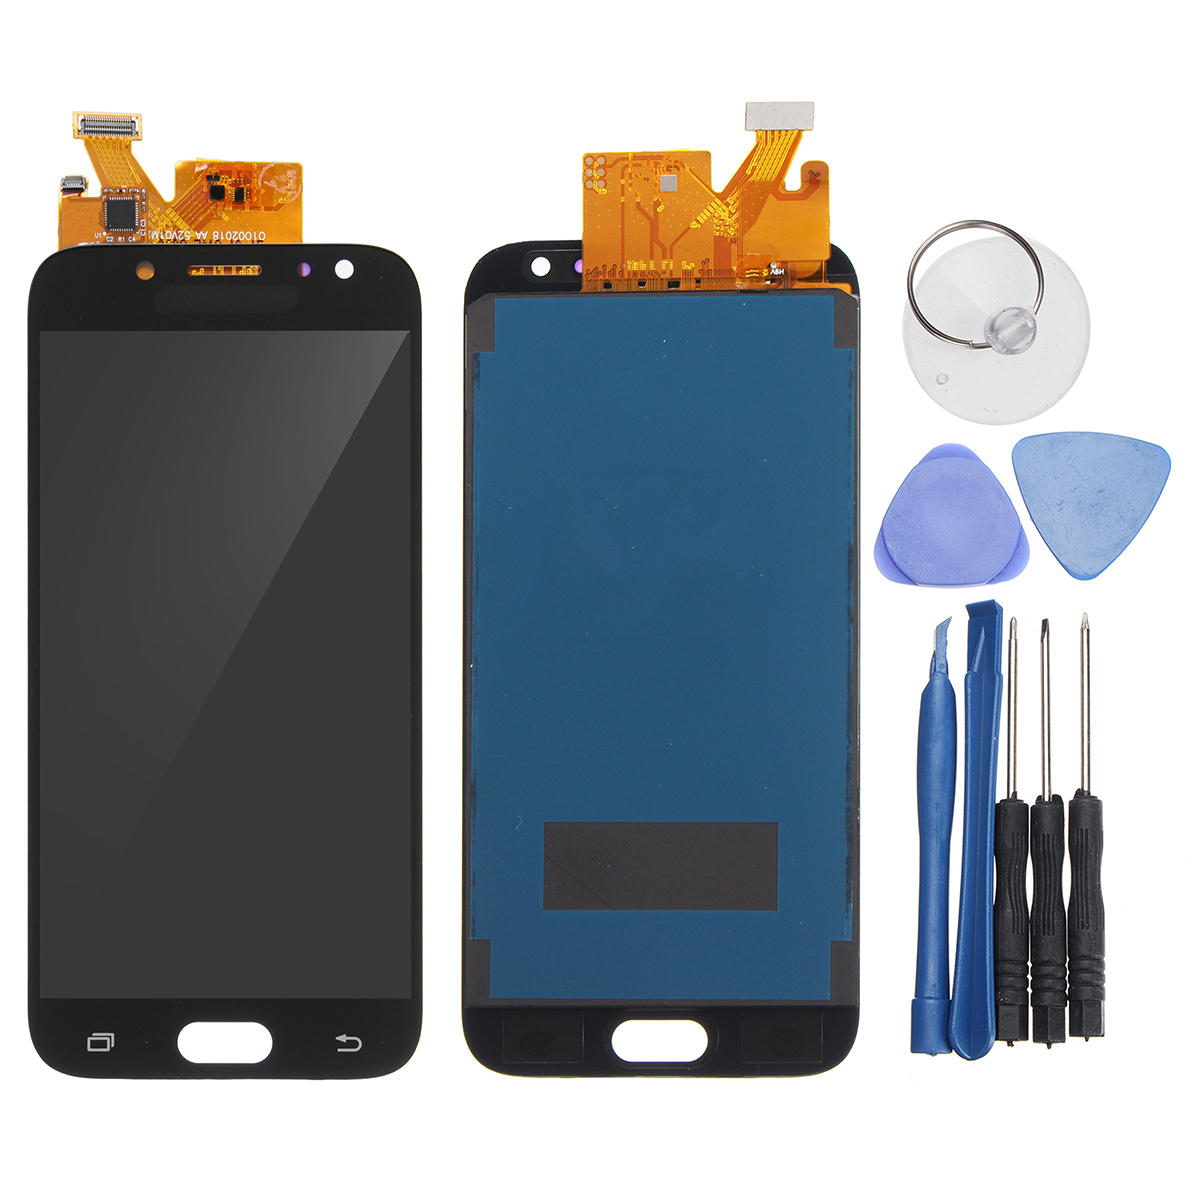 LCD Display Touch Screen Digitizer di ricambio con Strumenti per Galaxy J5 Samsung Pro 2017 J530 J530F